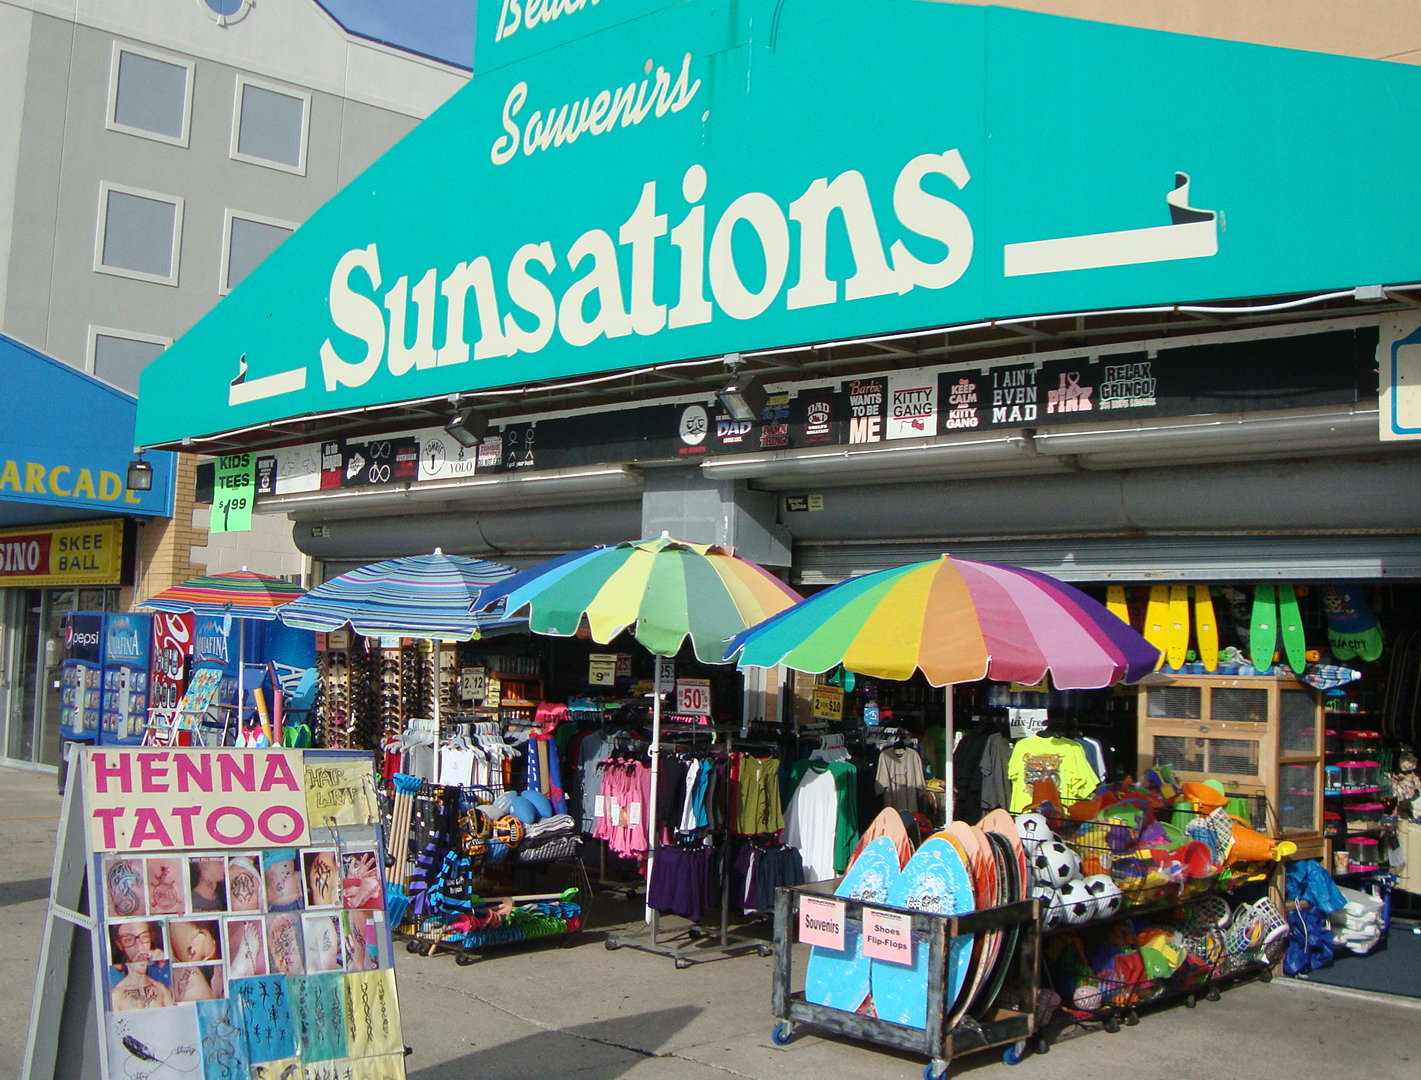 Sunsations-Ocean-City-MD-01.jpg